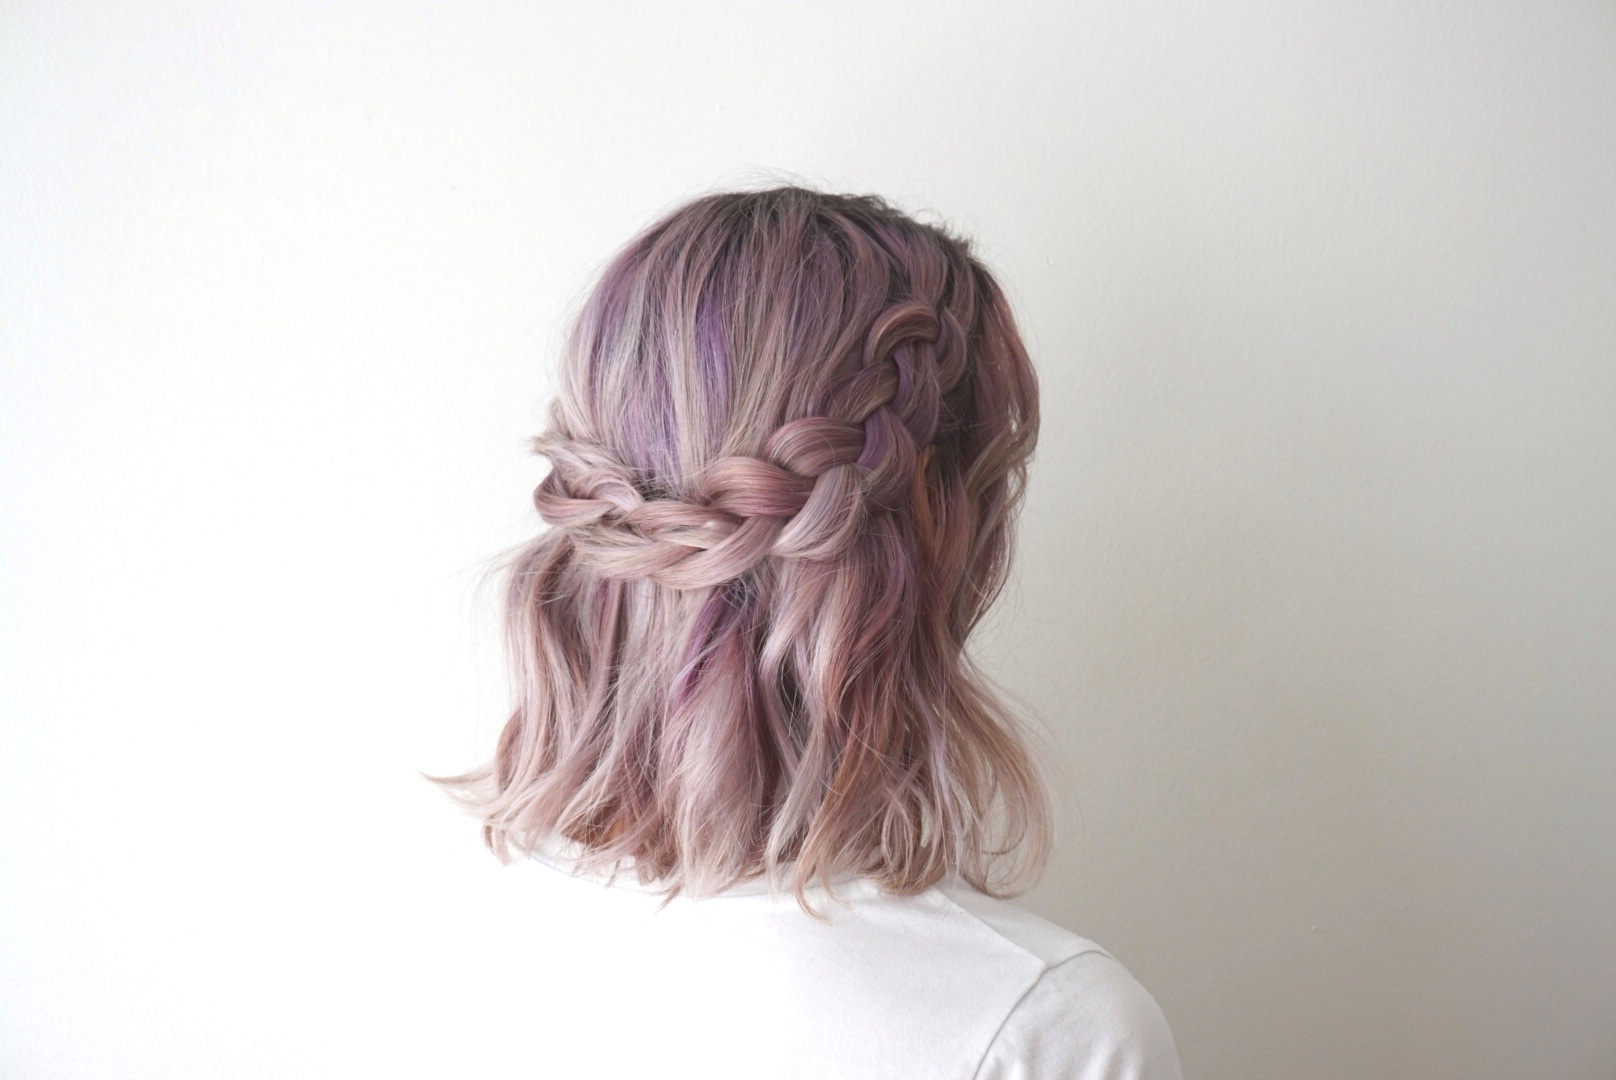 2019 Braided Shoulder Length Hairstyles Intended For Hairstyles : Braided Hairstyles For Medium Gorgeous Braids (View 5 of 20)